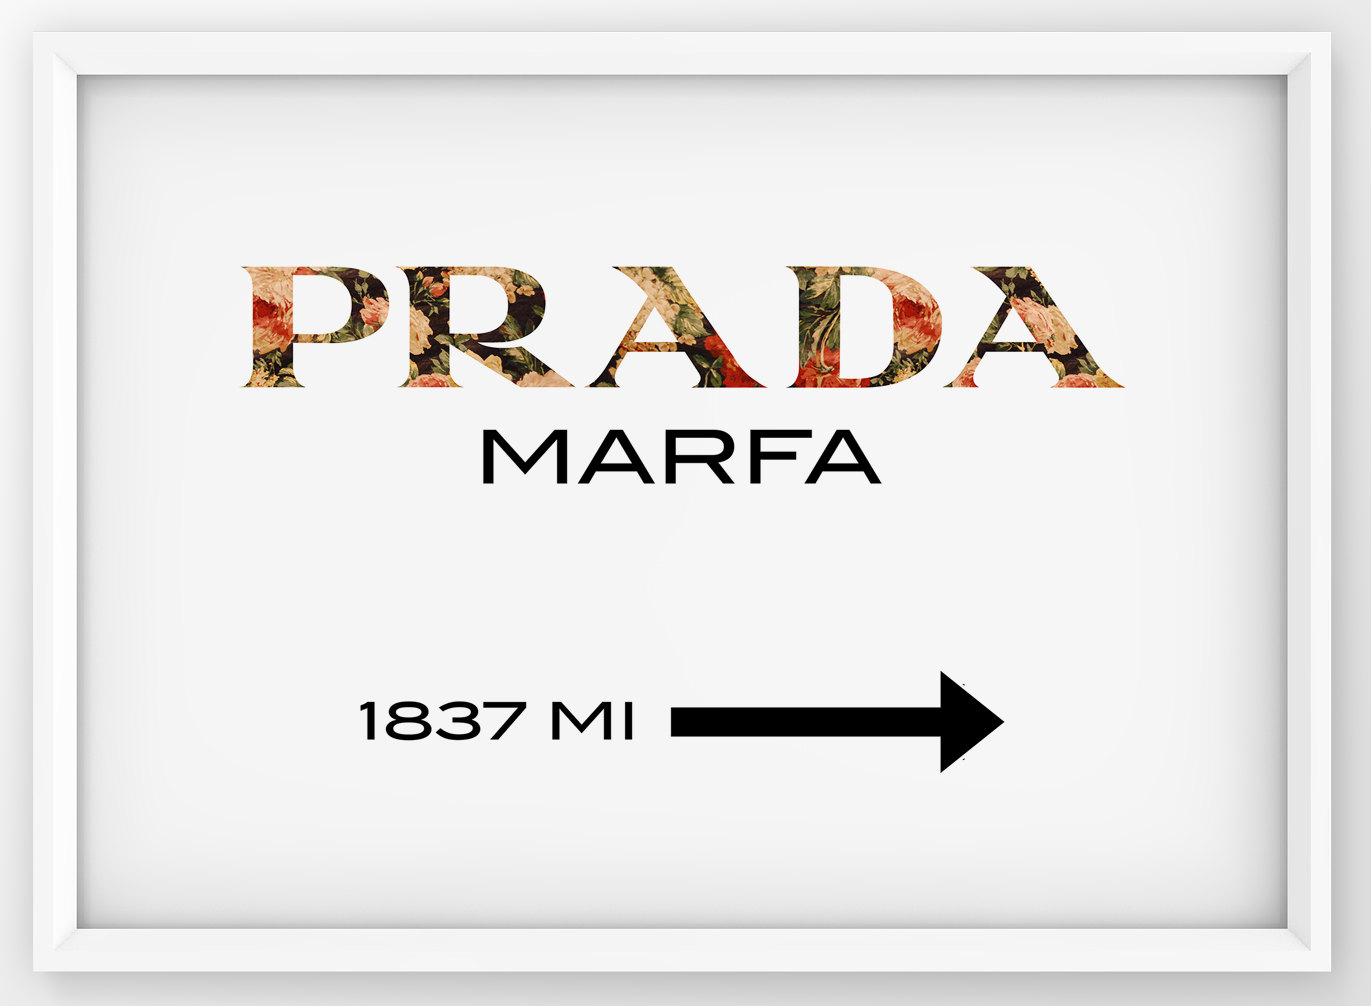 floral prada marfa zeichen prada marfa druck prada logo. Black Bedroom Furniture Sets. Home Design Ideas